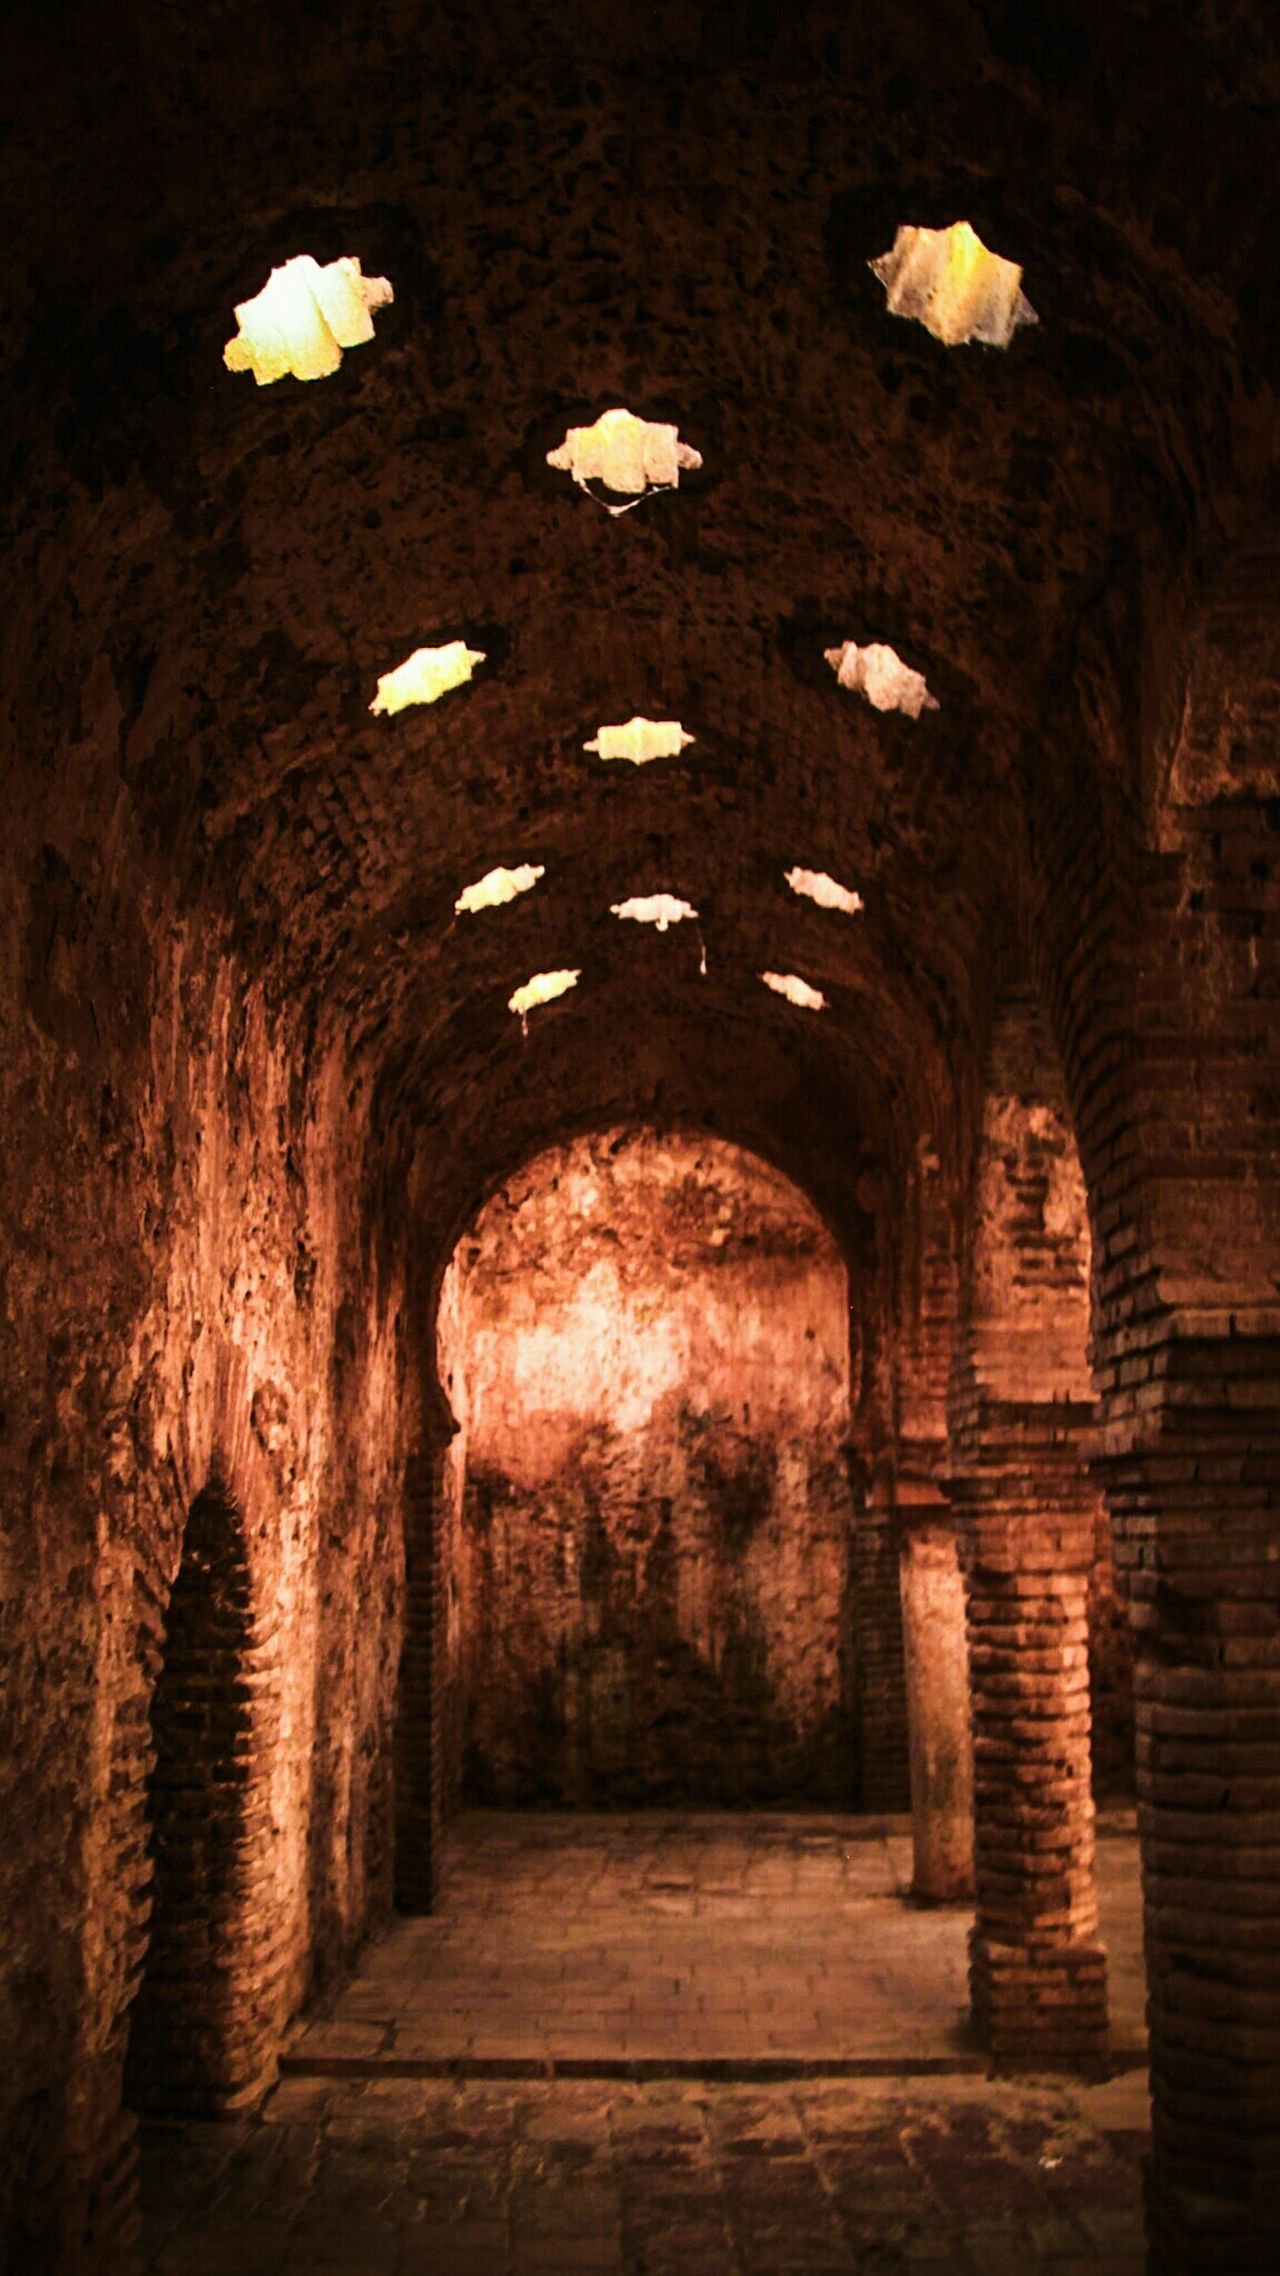 Indoors  Tunnel No People Illuminated Ancient Civilization Travel Ronda Baños árabes Ronda, Malaga EyeEm Gallery Check This Out Architecture Arabic Architecture Arabic Style